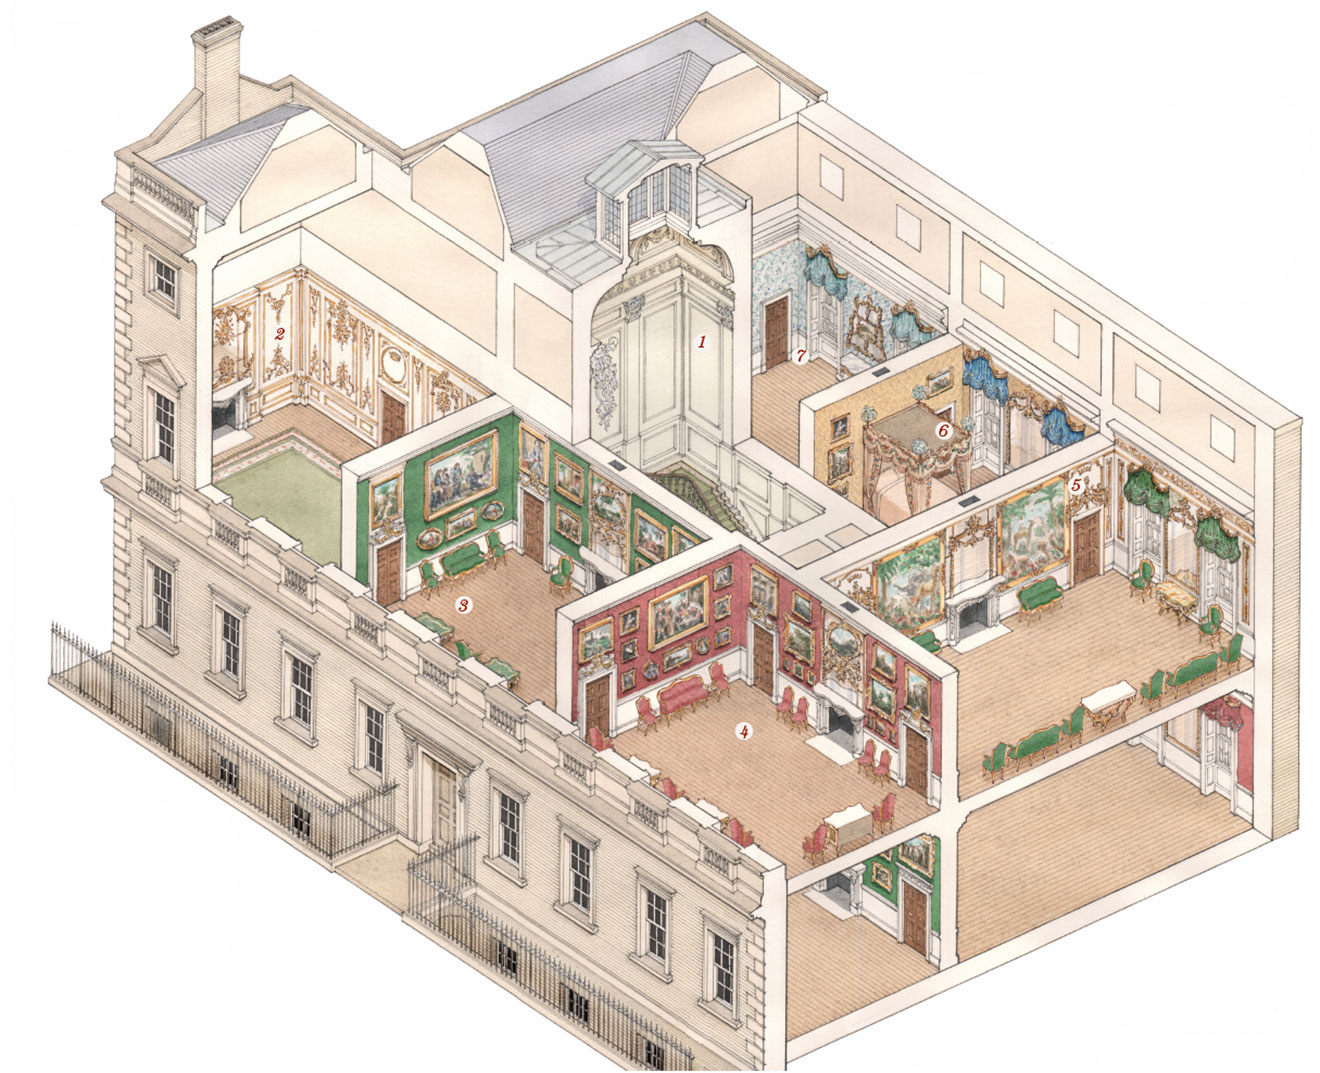 John martin robinson re creates the splendours of this outstanding georgian town house with the help of historical photography and a reconstruction drawing